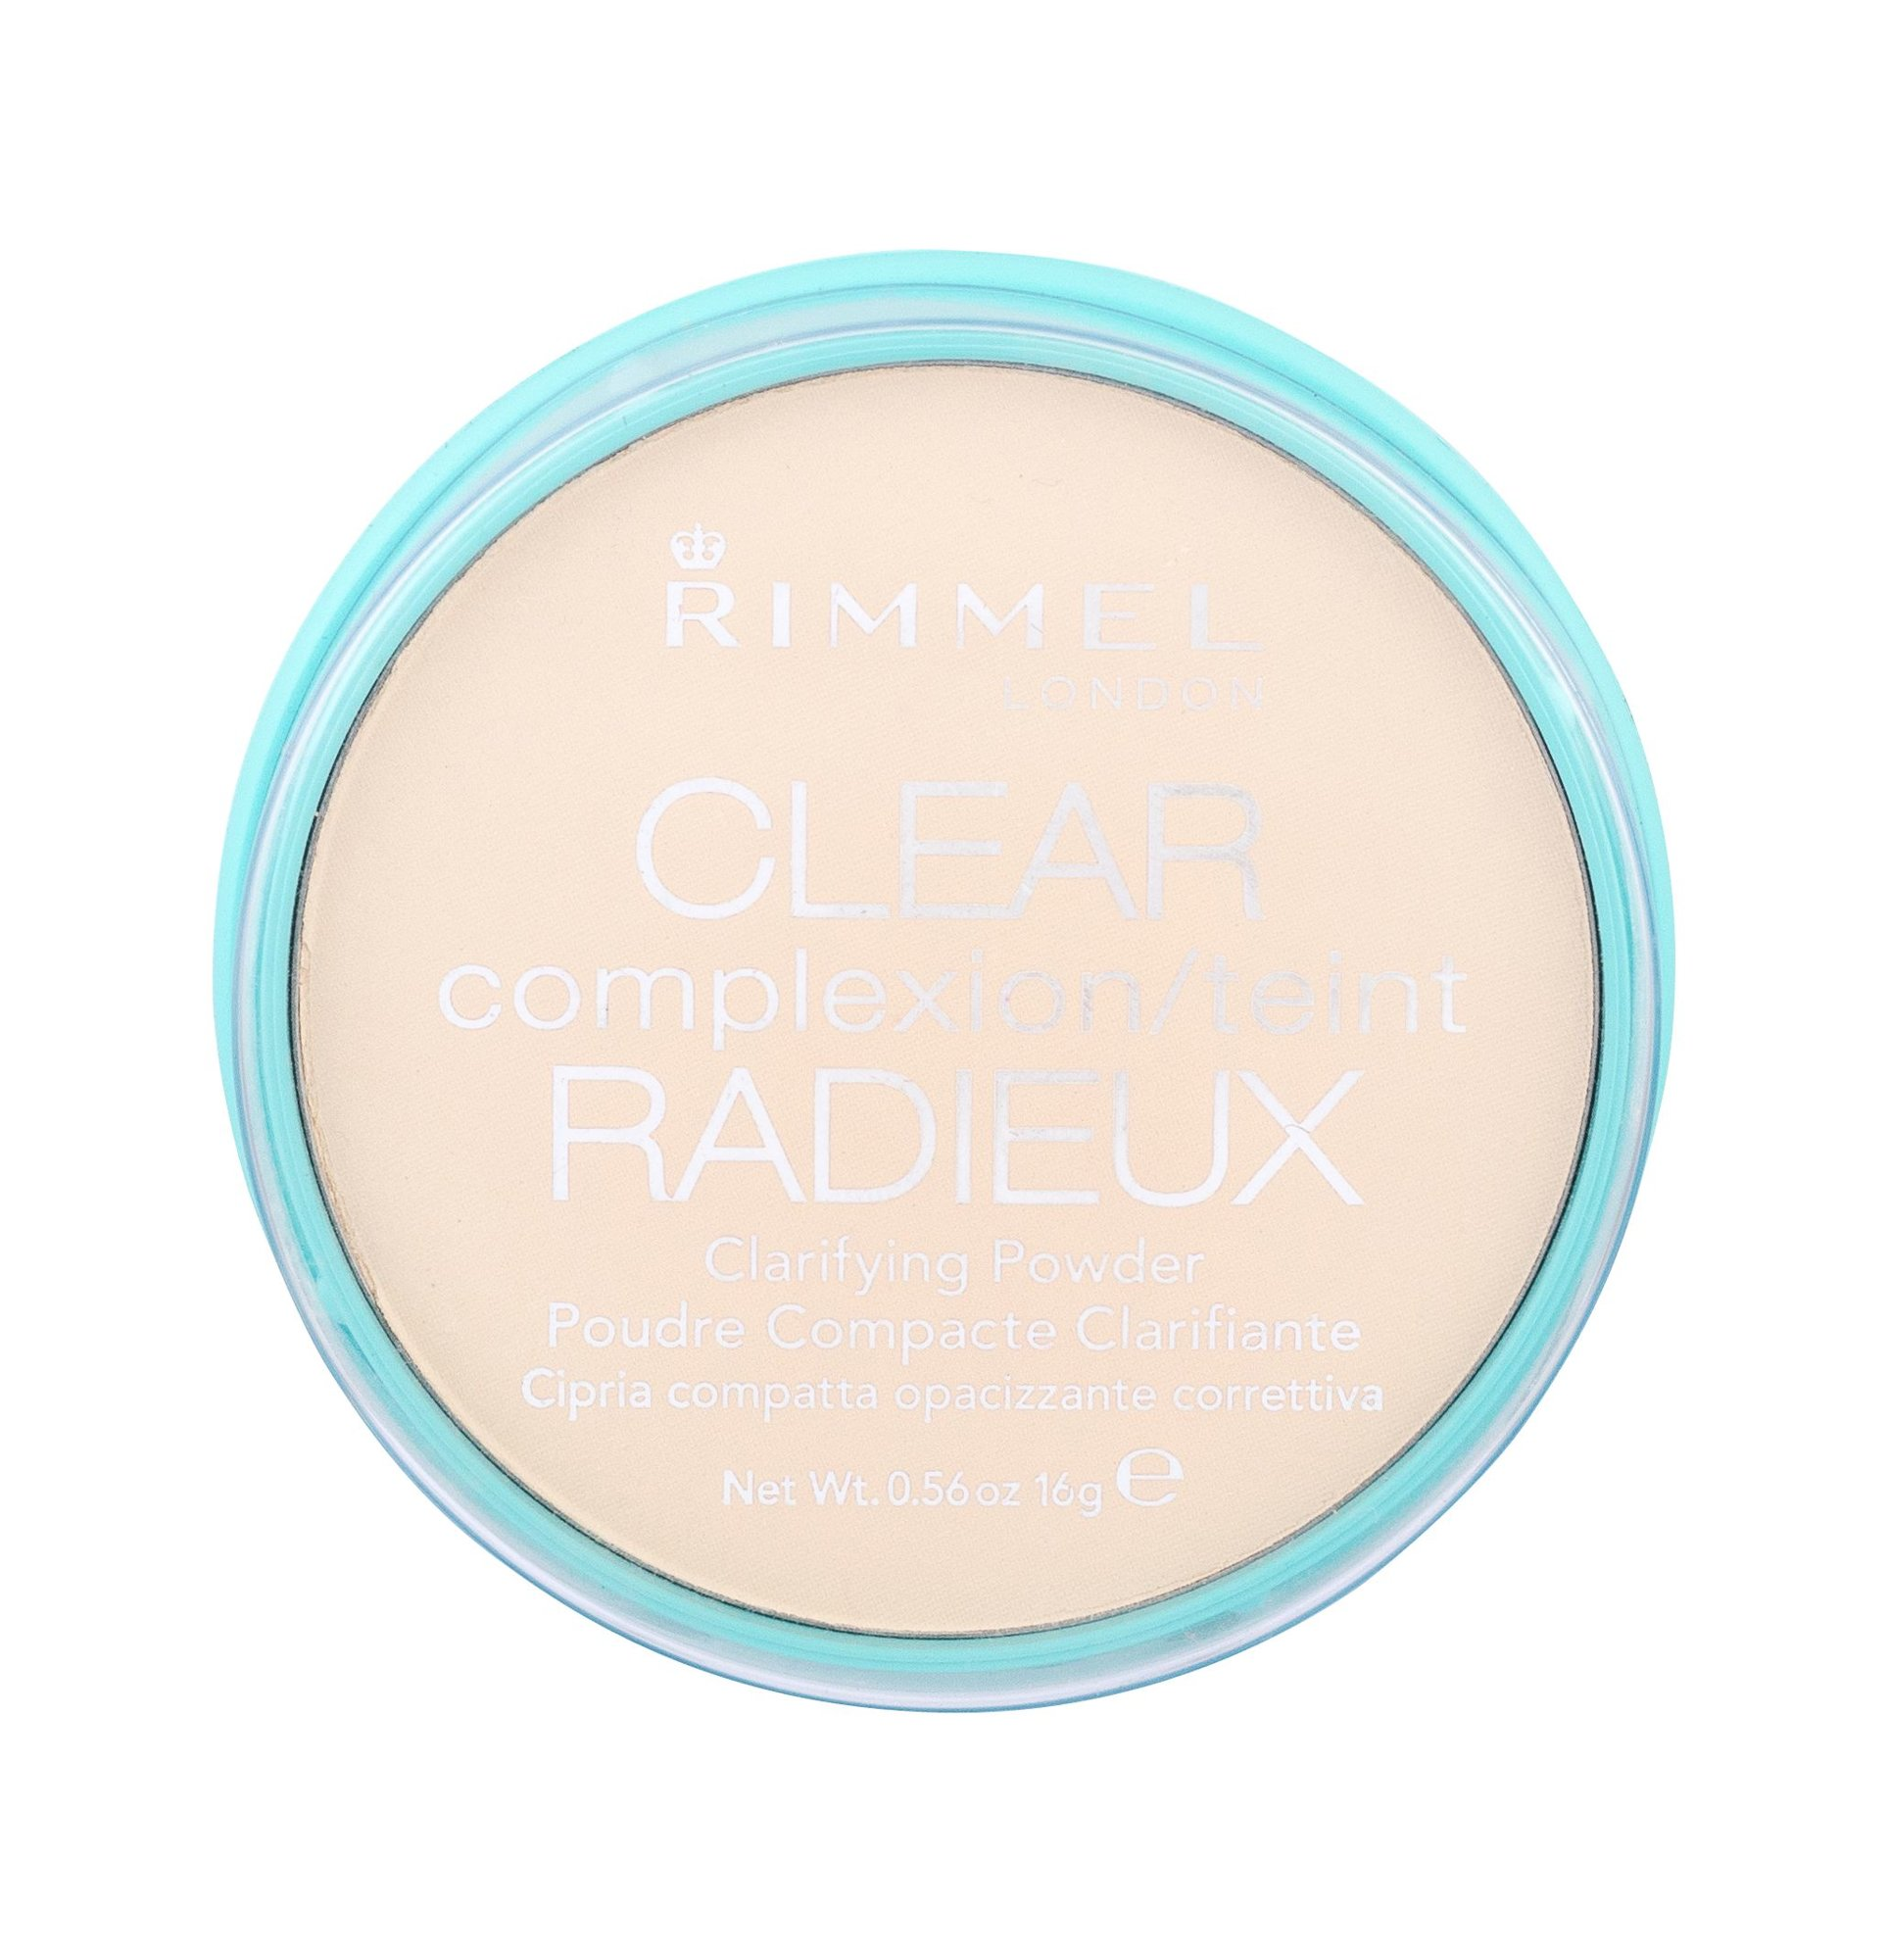 Rimmel London Clear Complexion Powder 16ml 021 Transparent